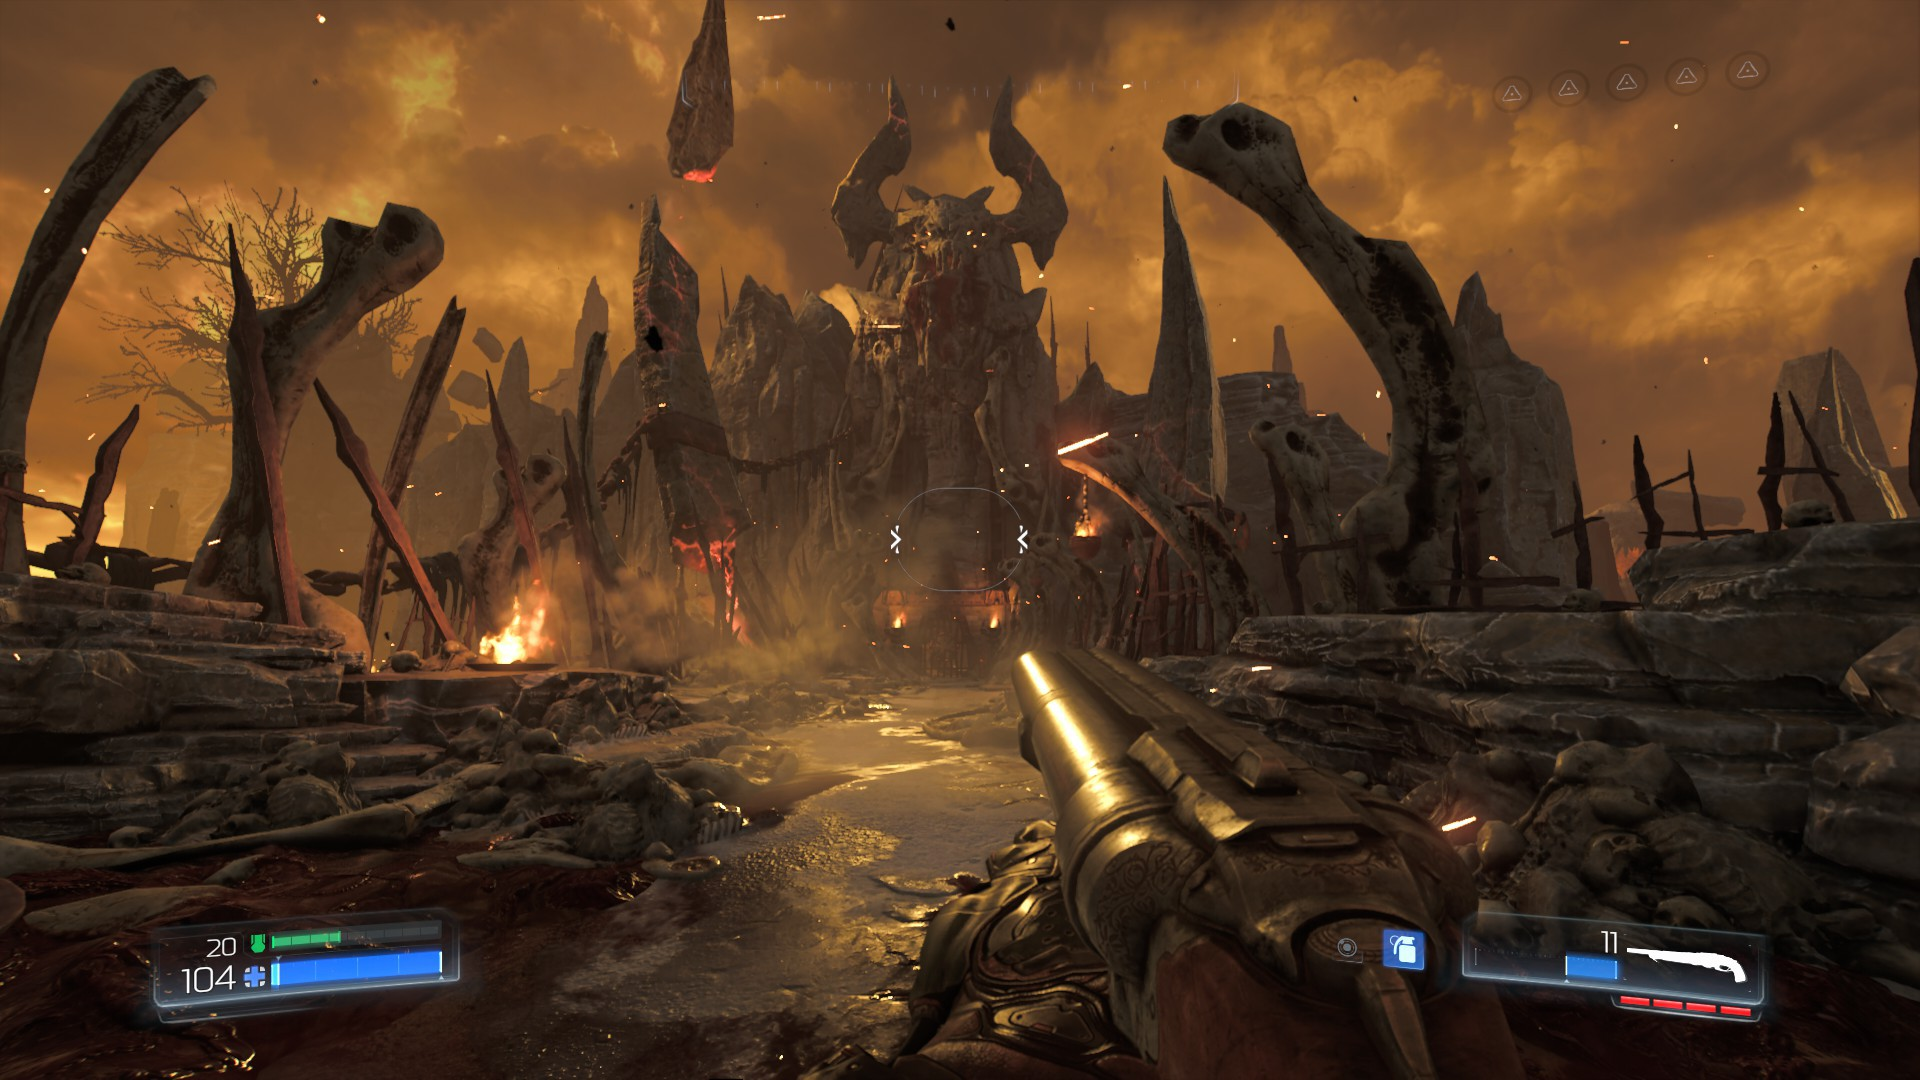 DOOM Gets New Gameplay Video Showcasing Early Game Mission Screenshots